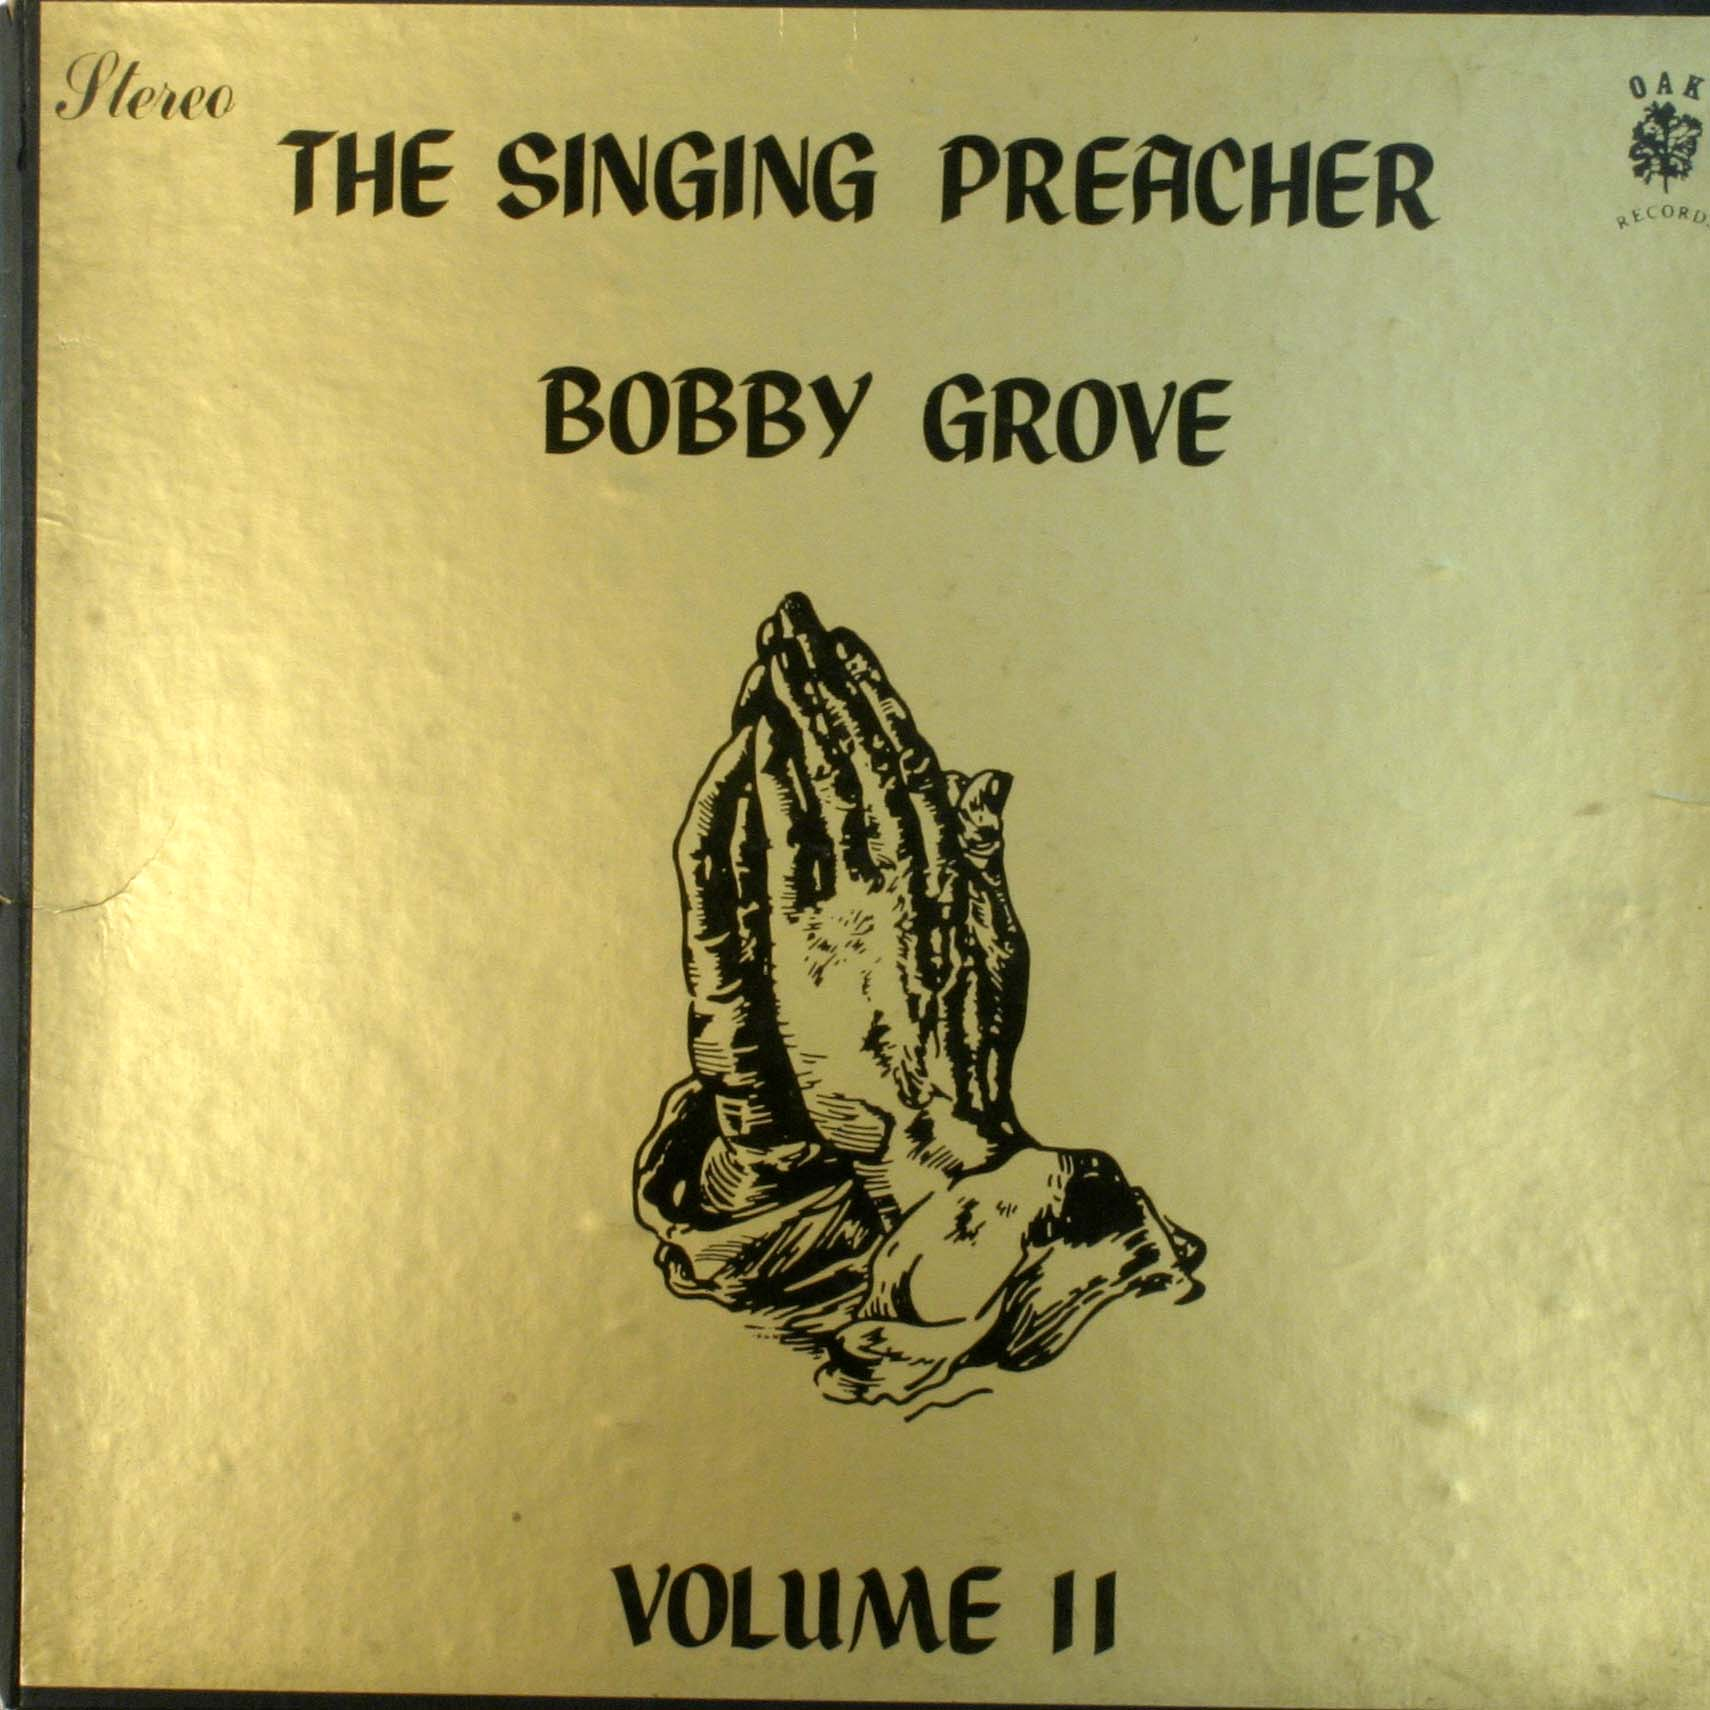 The Singing Preacher Volume Ii